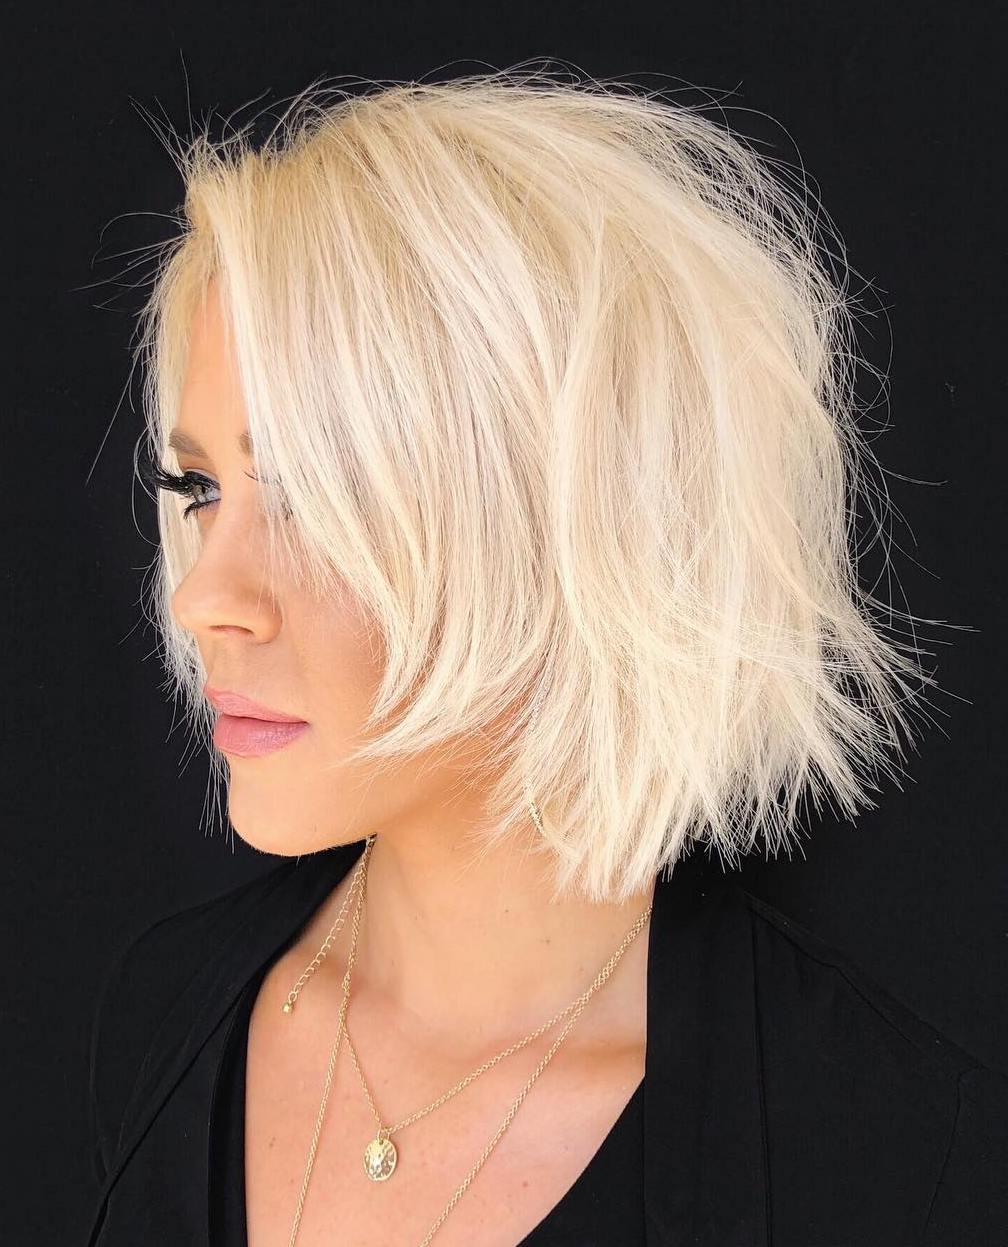 40 Modern Shag Haircuts For Women To Make A Splash Pertaining To 2017 Blonde Shag Haircuts With Layers (View 14 of 20)